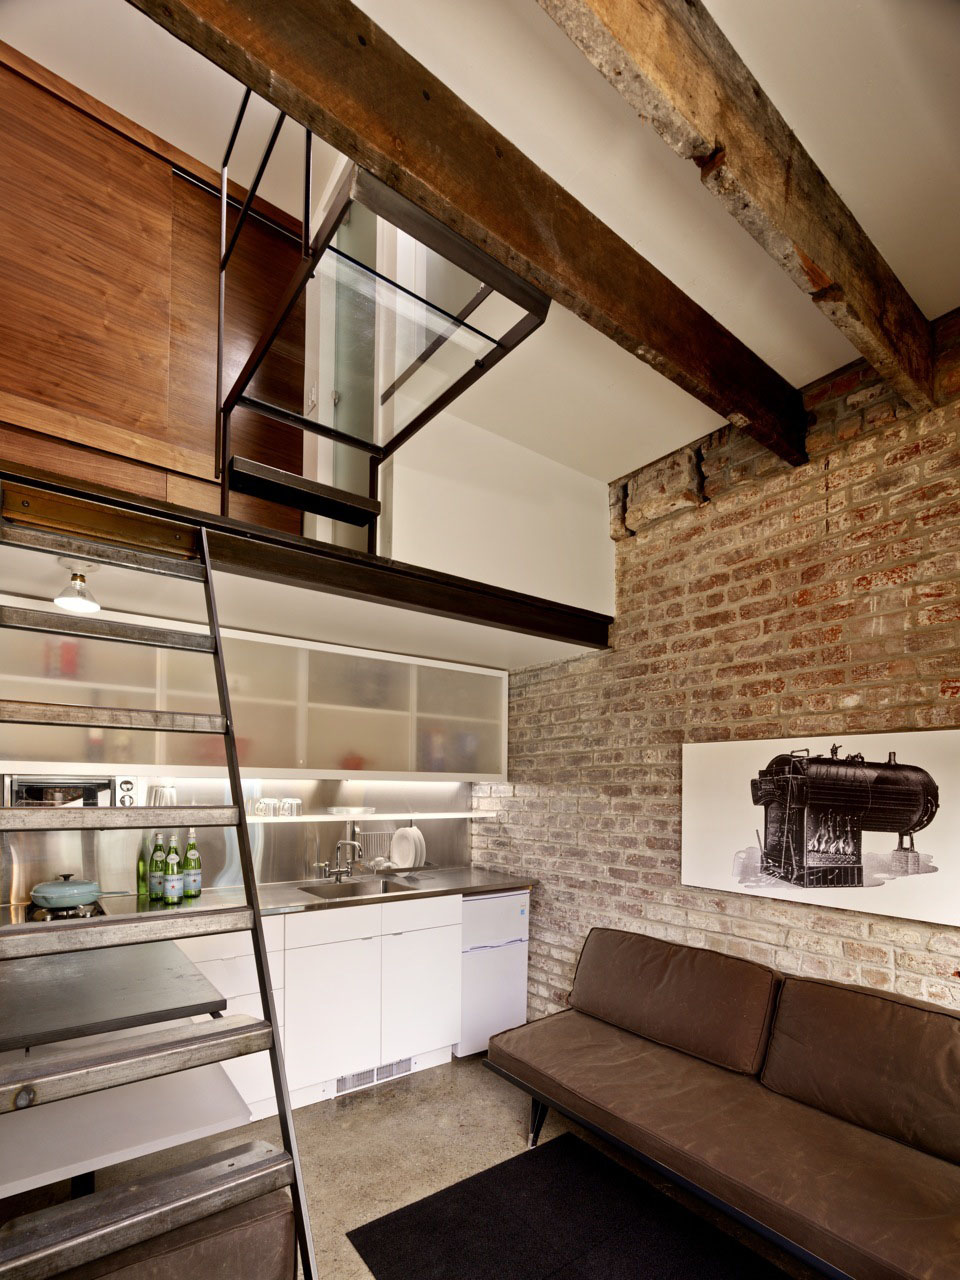 Mezzanine House Design The Loft